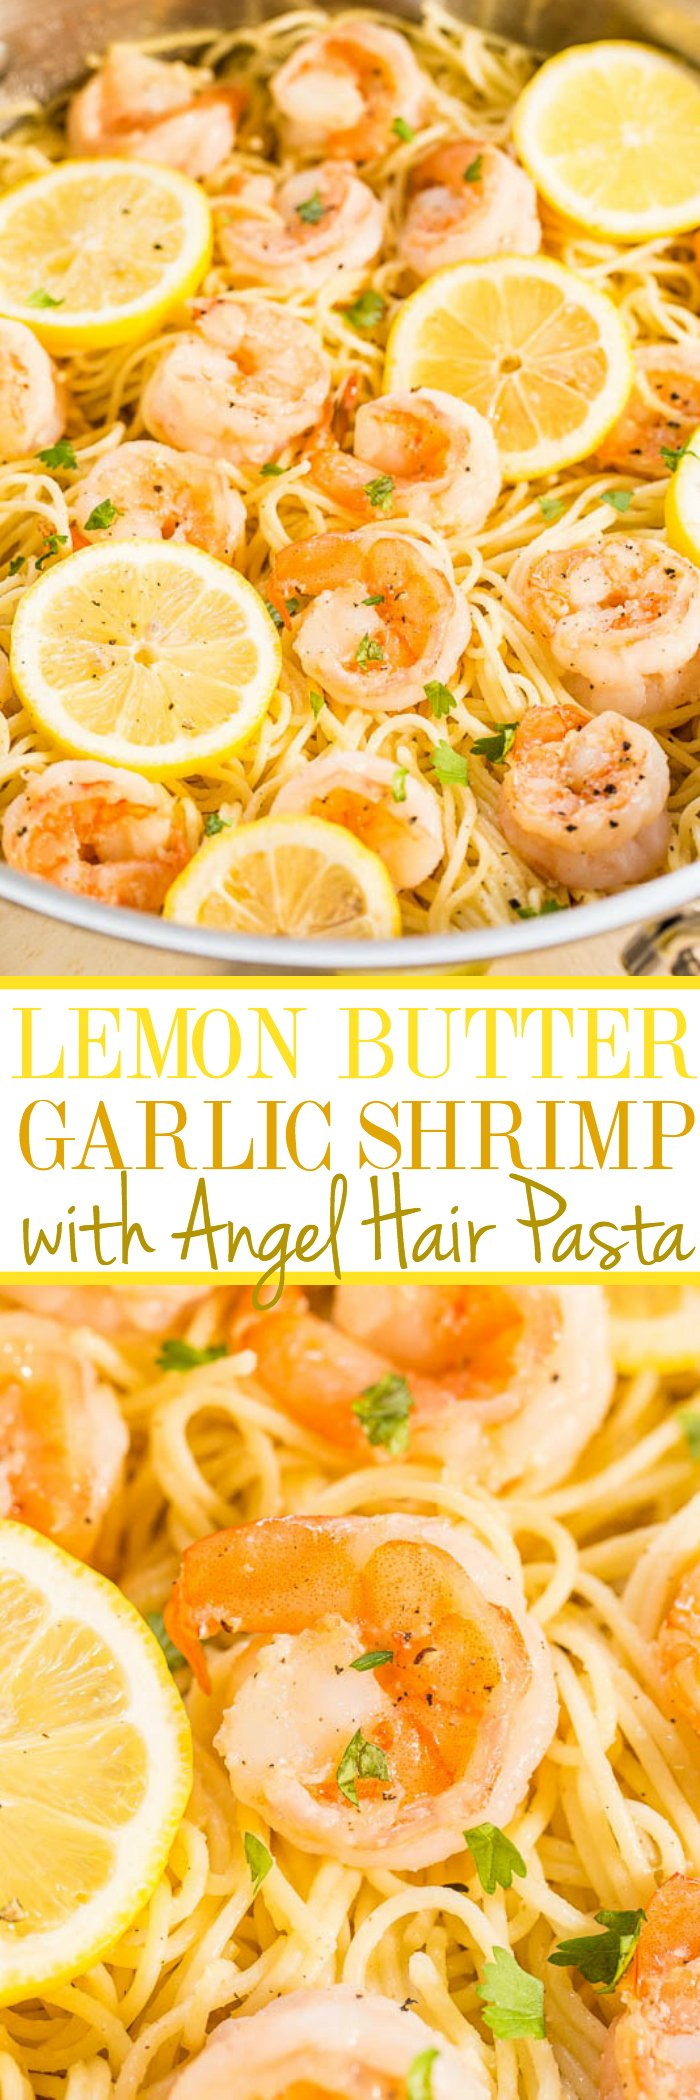 Lemon Butter Garlic Shrimp Pasta — Buttery noodles with juicy plump shrimp, flavored with lemon and garlic!! A family-friendly dinner recipe that's ready in 15 minutes and it's so EASY!!